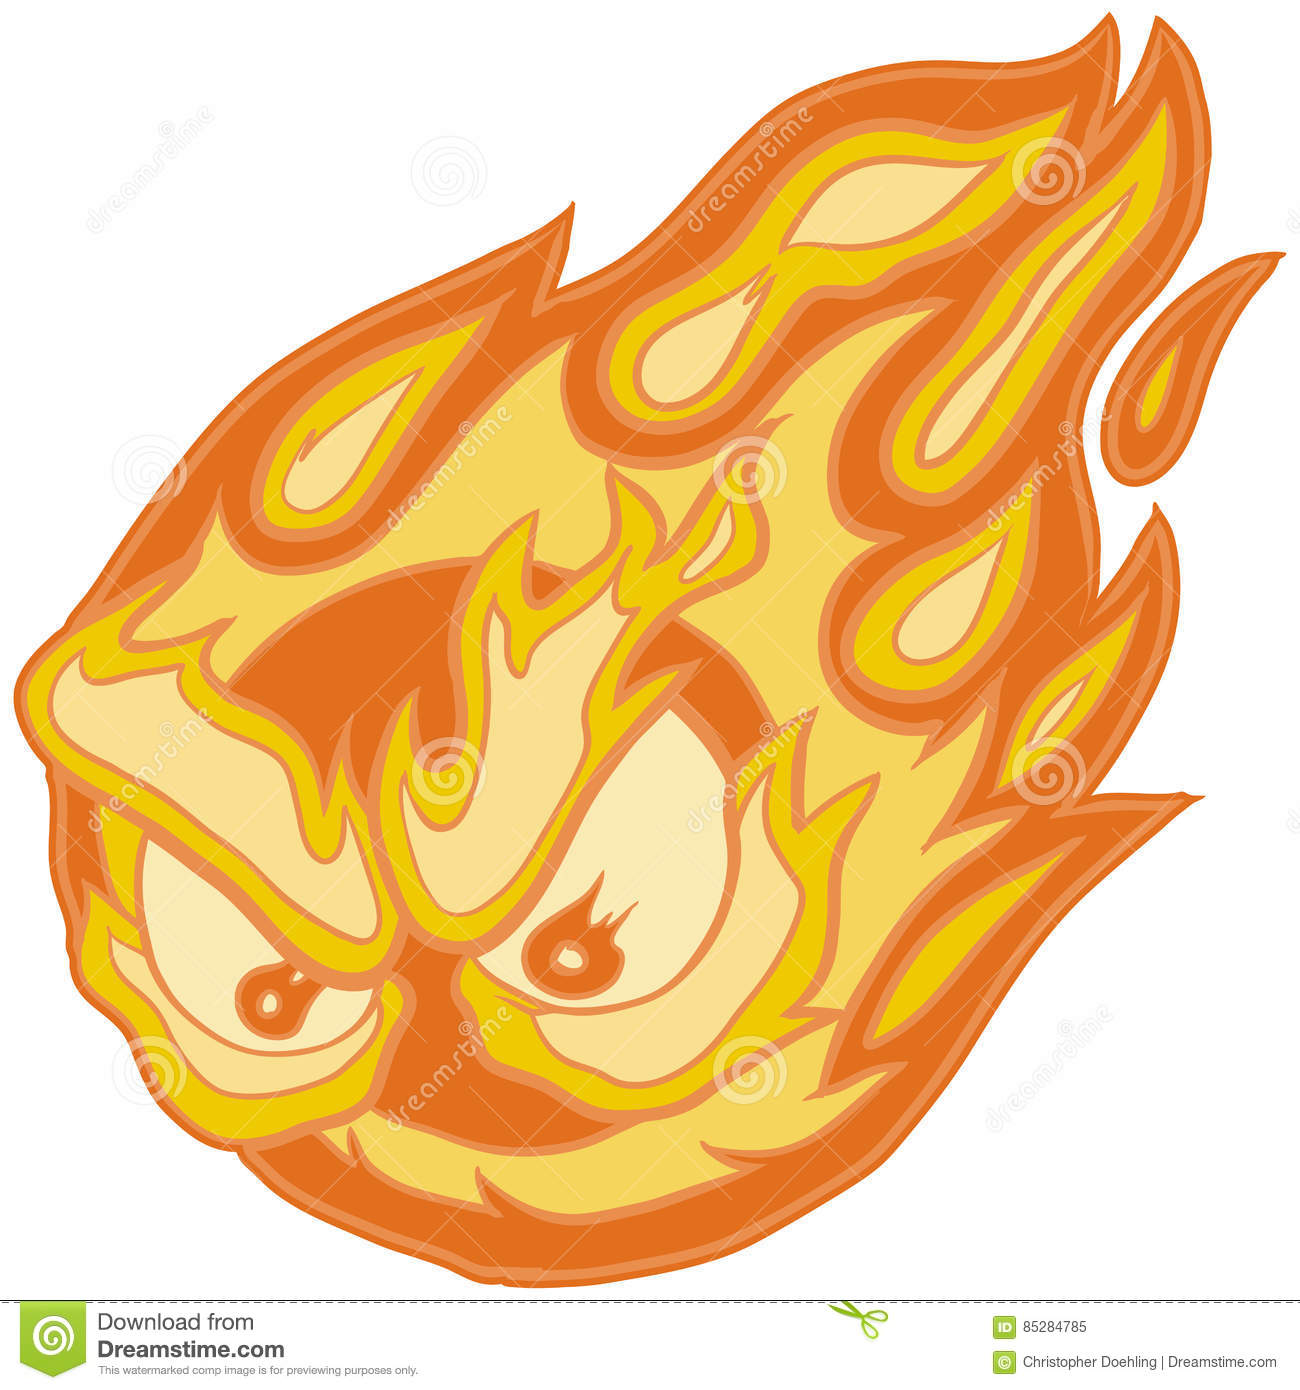 Fireball Clipart Angry Eyes Fireball Vector Clip Art Cartoon Stock Vector -  Illustration Of Fire, Light